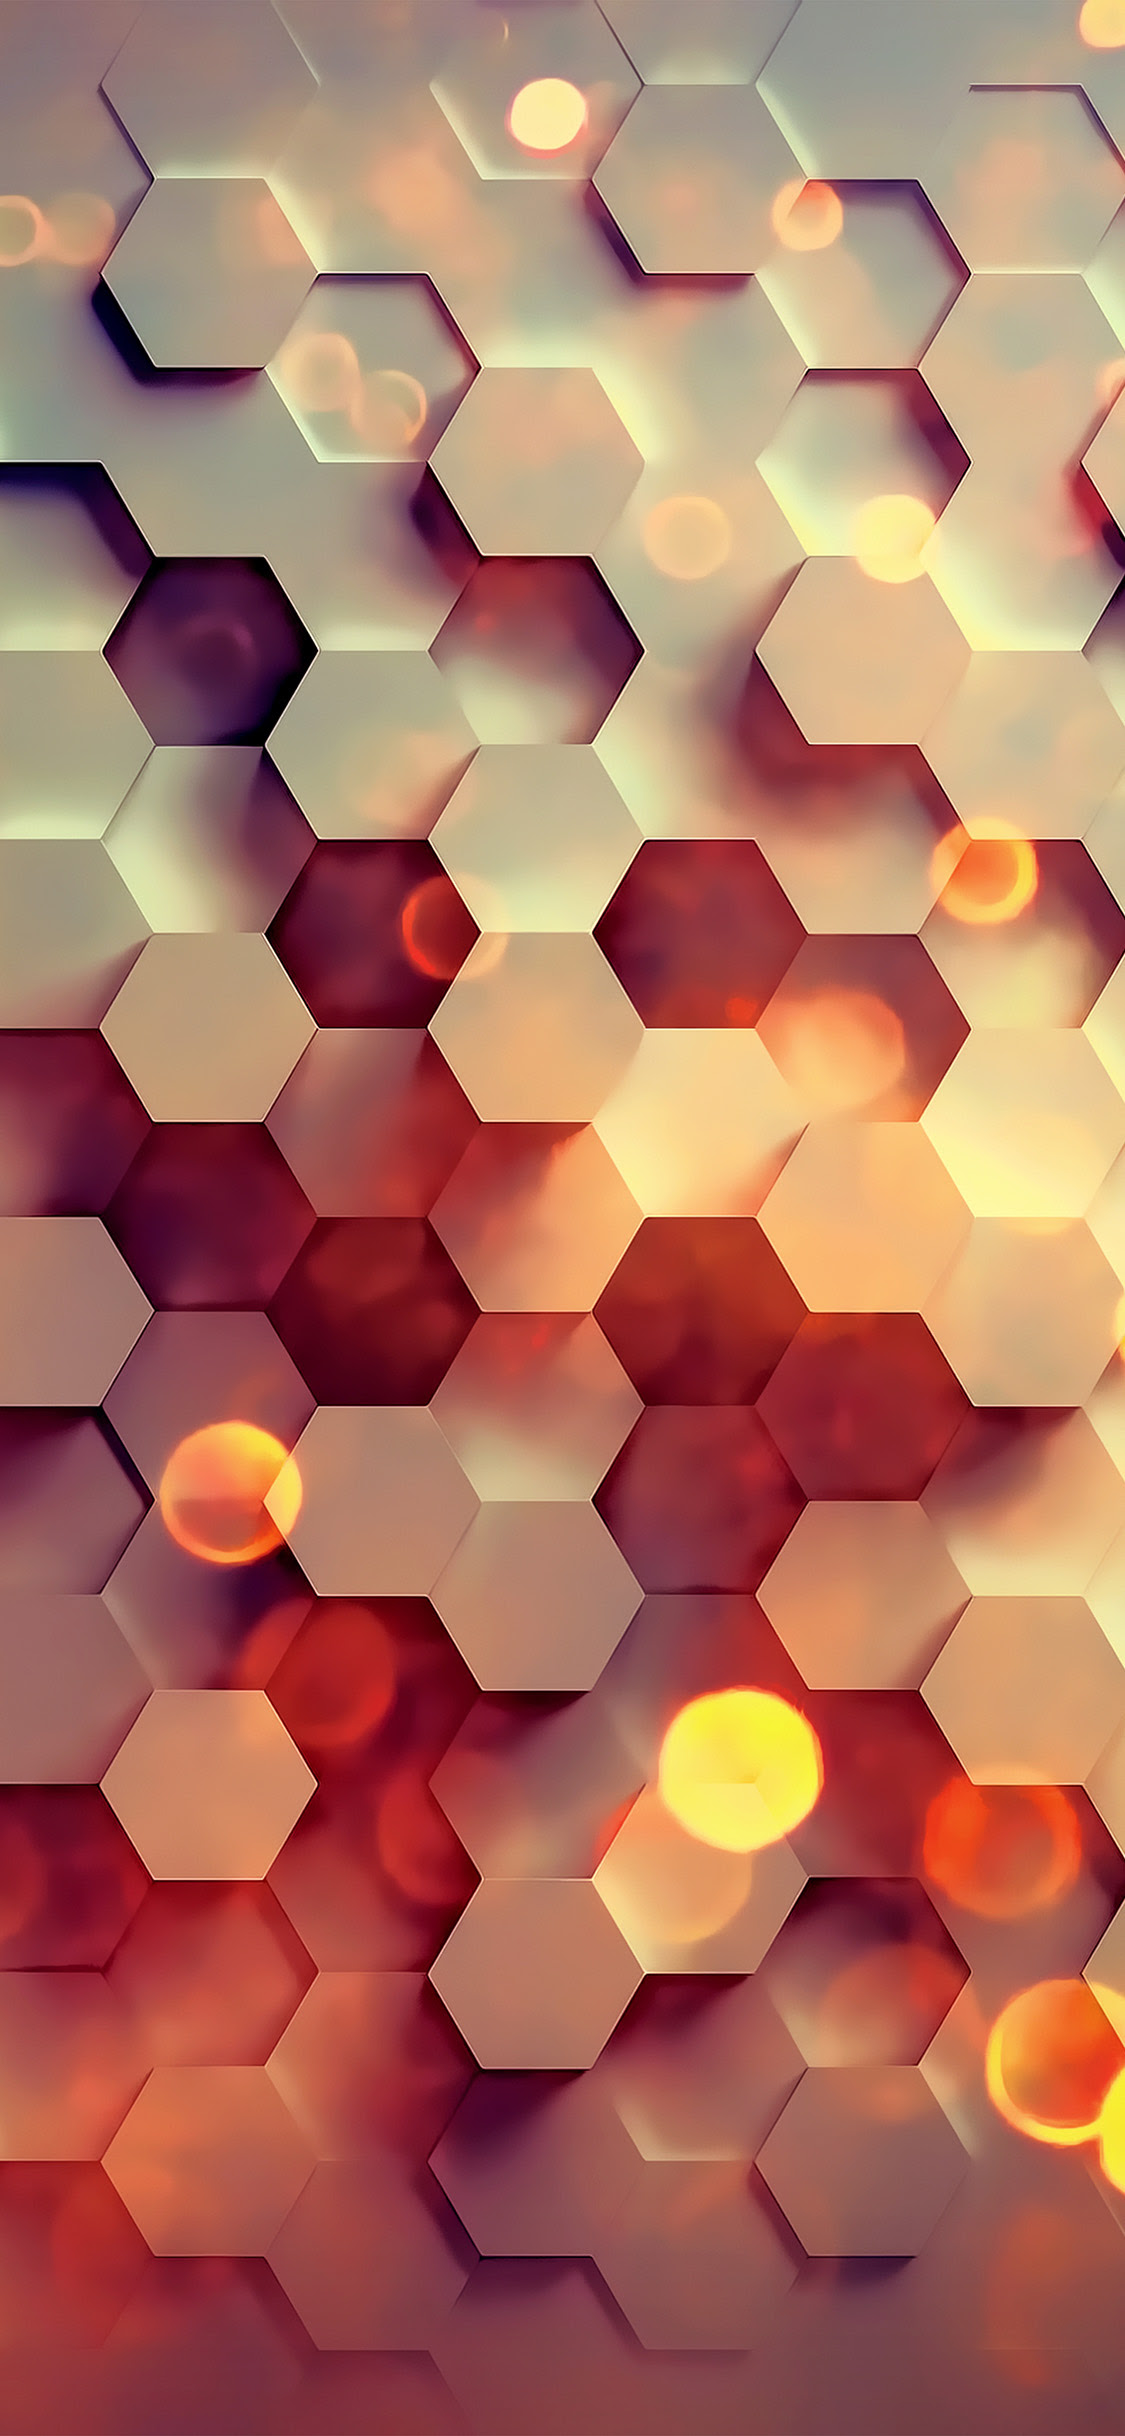 vy40-honey-hexagon-digital-abstract-pattern-background ...